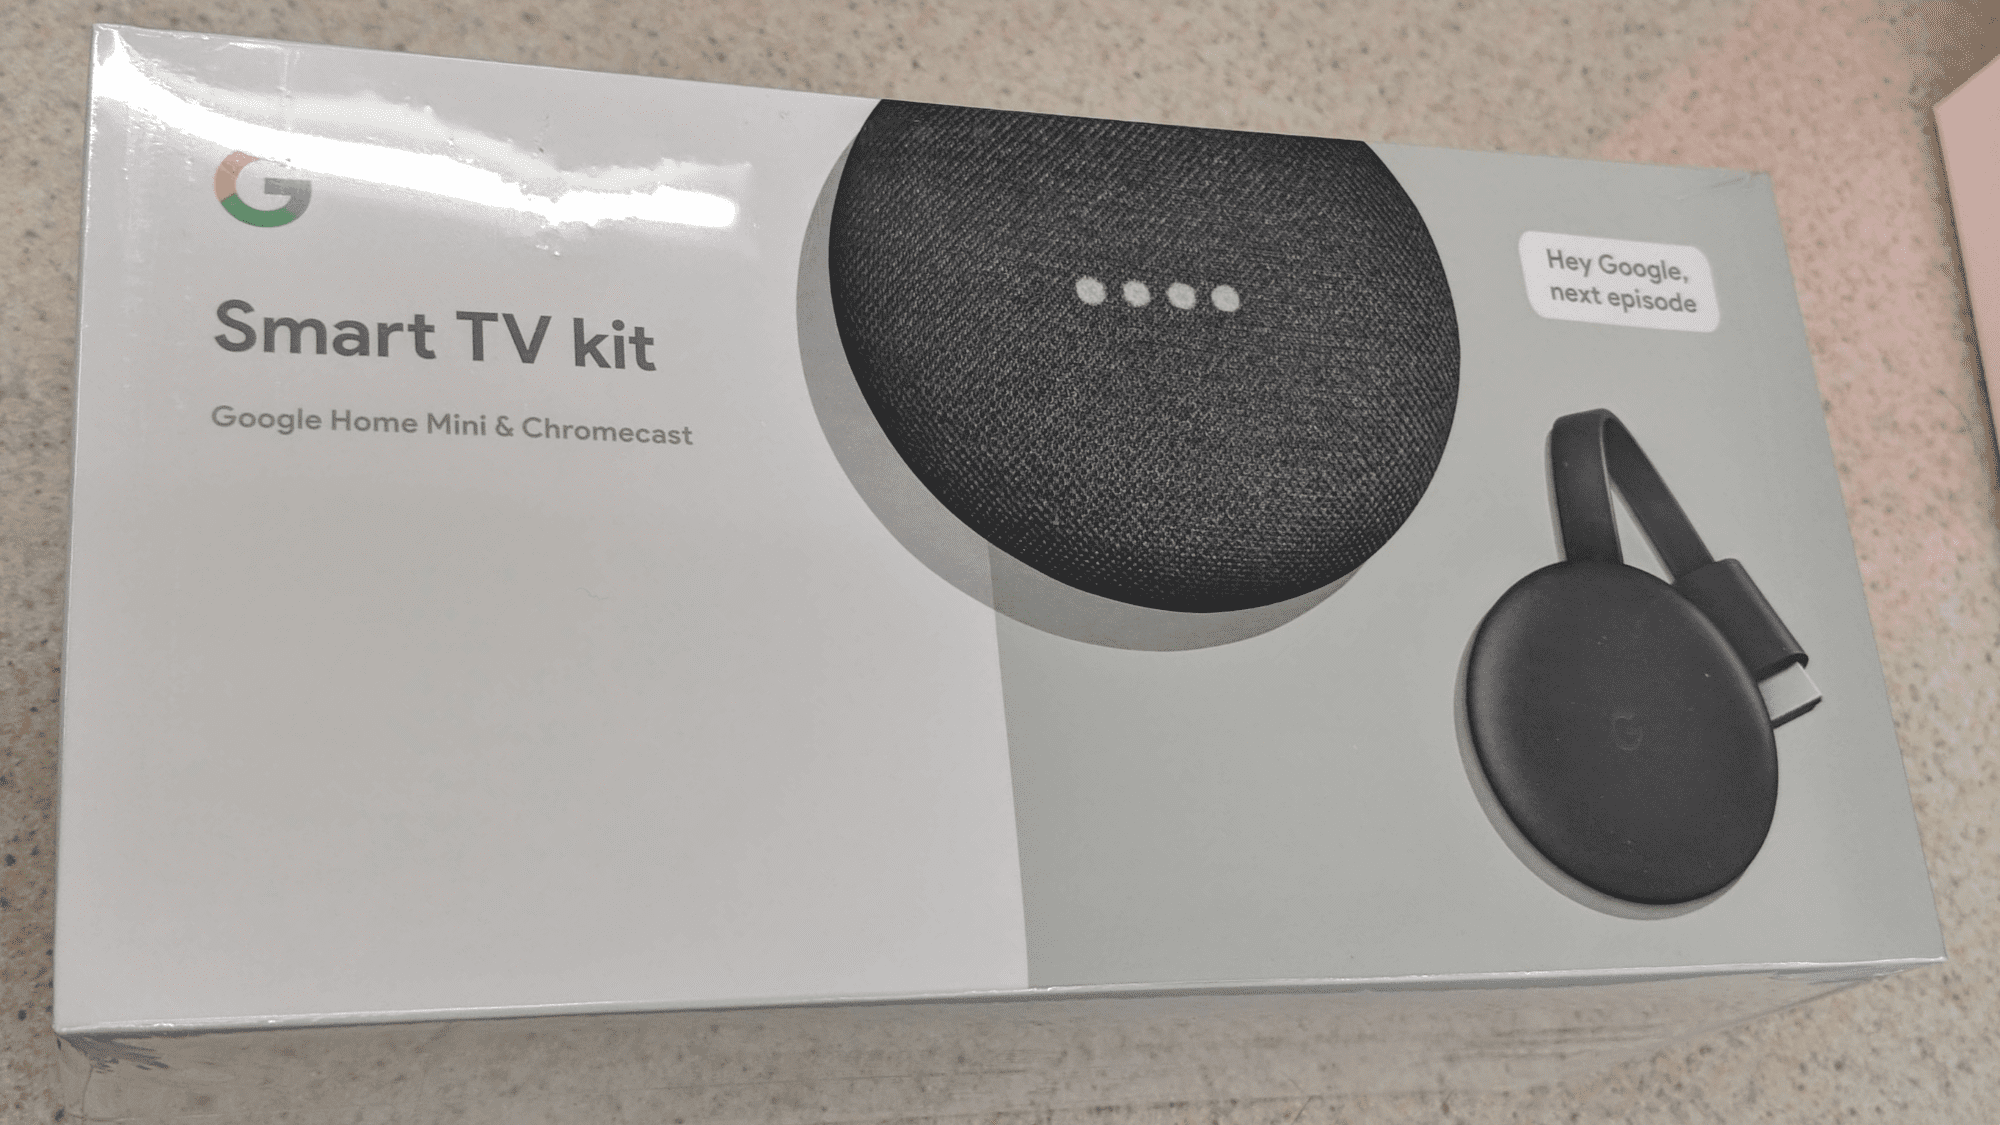 Leaked Chromecast 3 Smart TV Kit Joins The Growing List Upcoming #MadeByGoogle Products